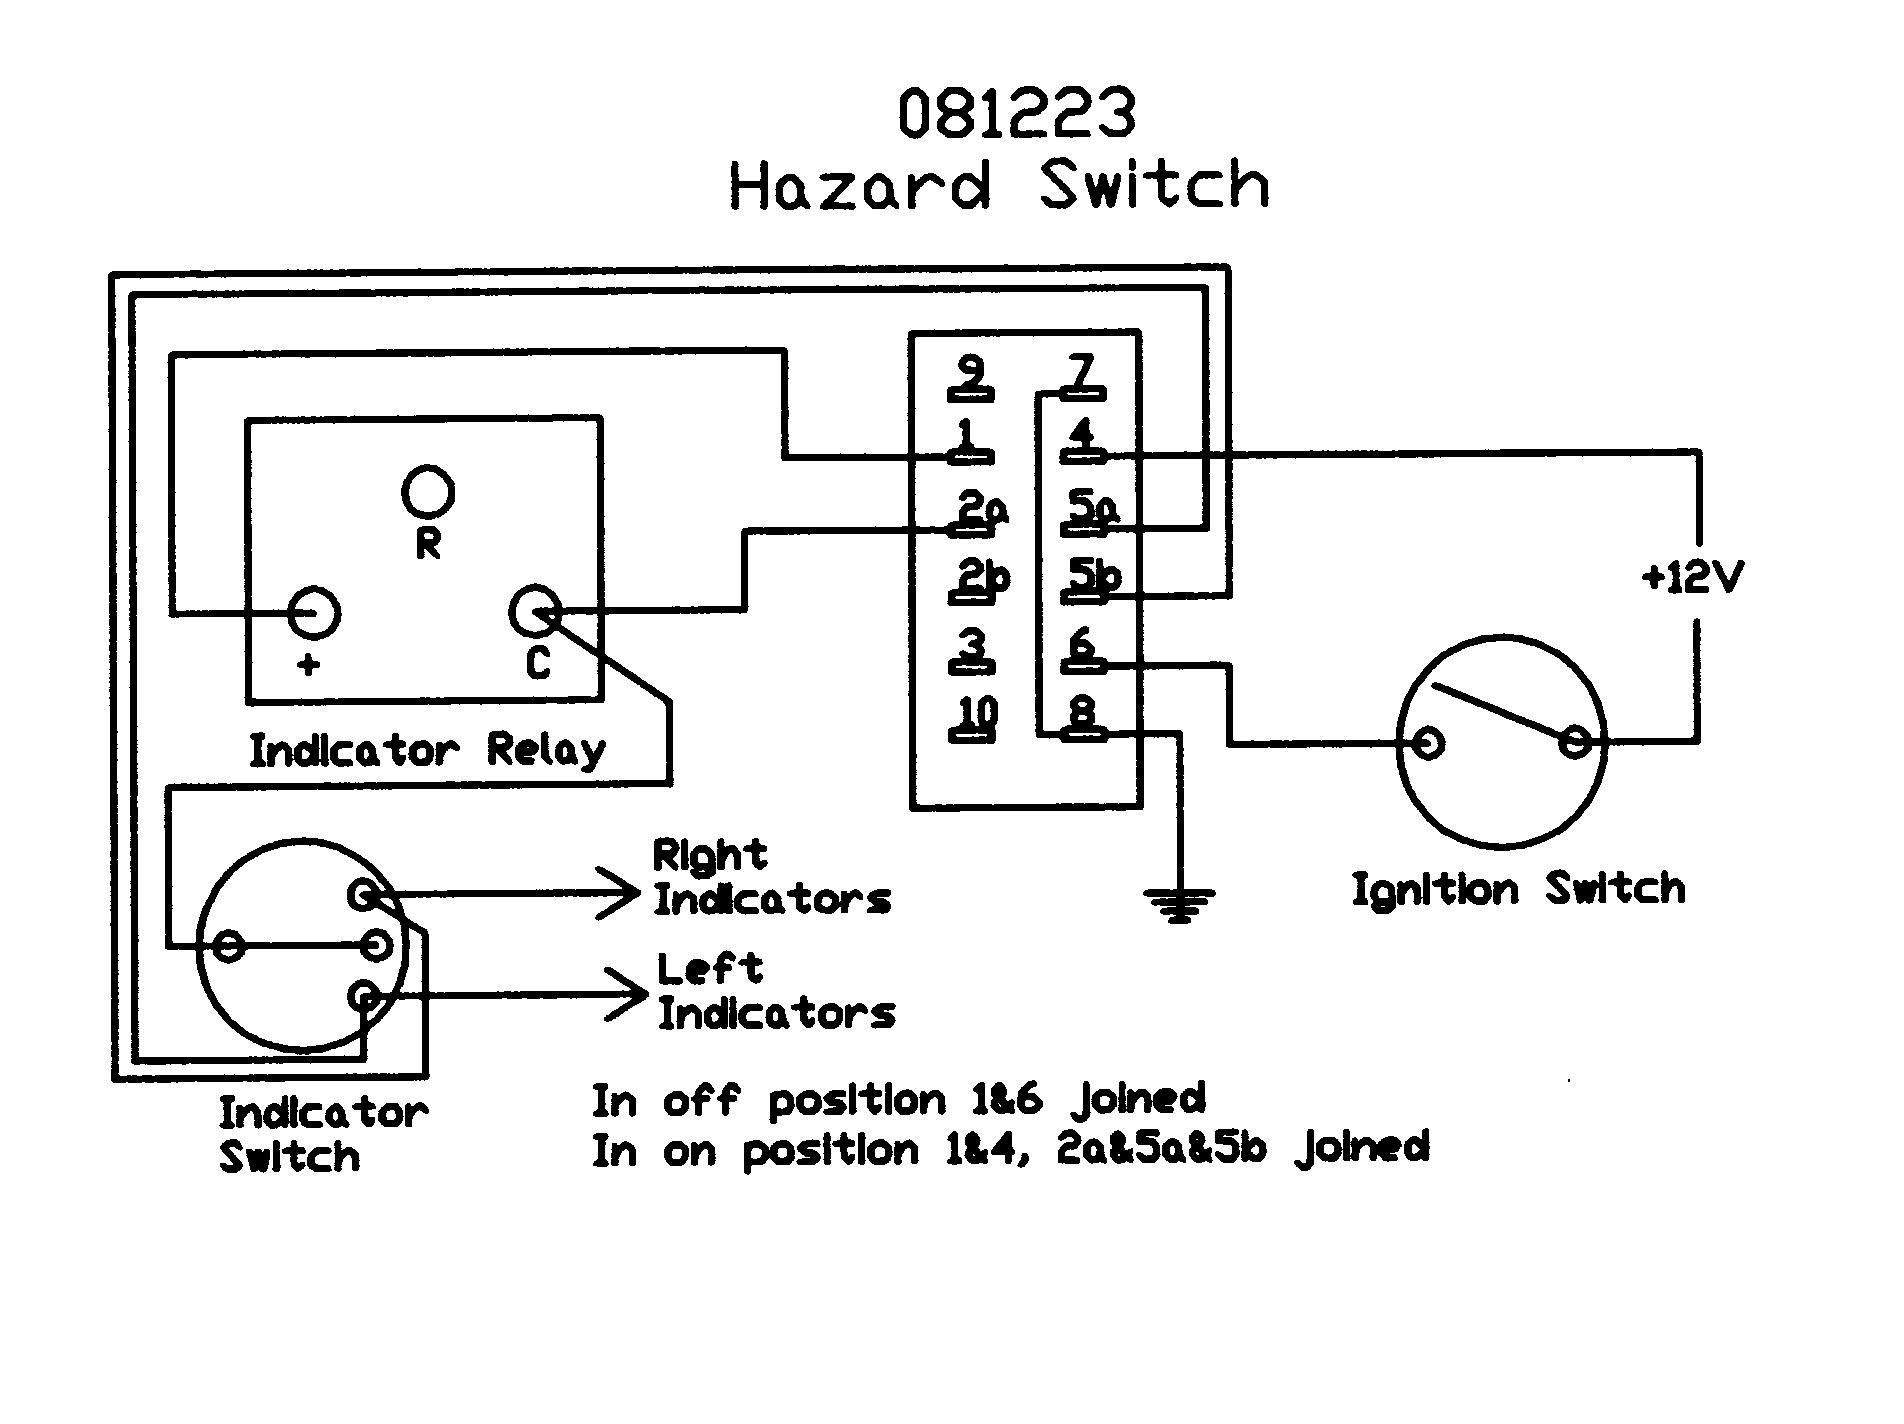 081223_wiring_diagram_1 rocker hazard switch hazard warning switch wiring diagram at webbmarketing.co